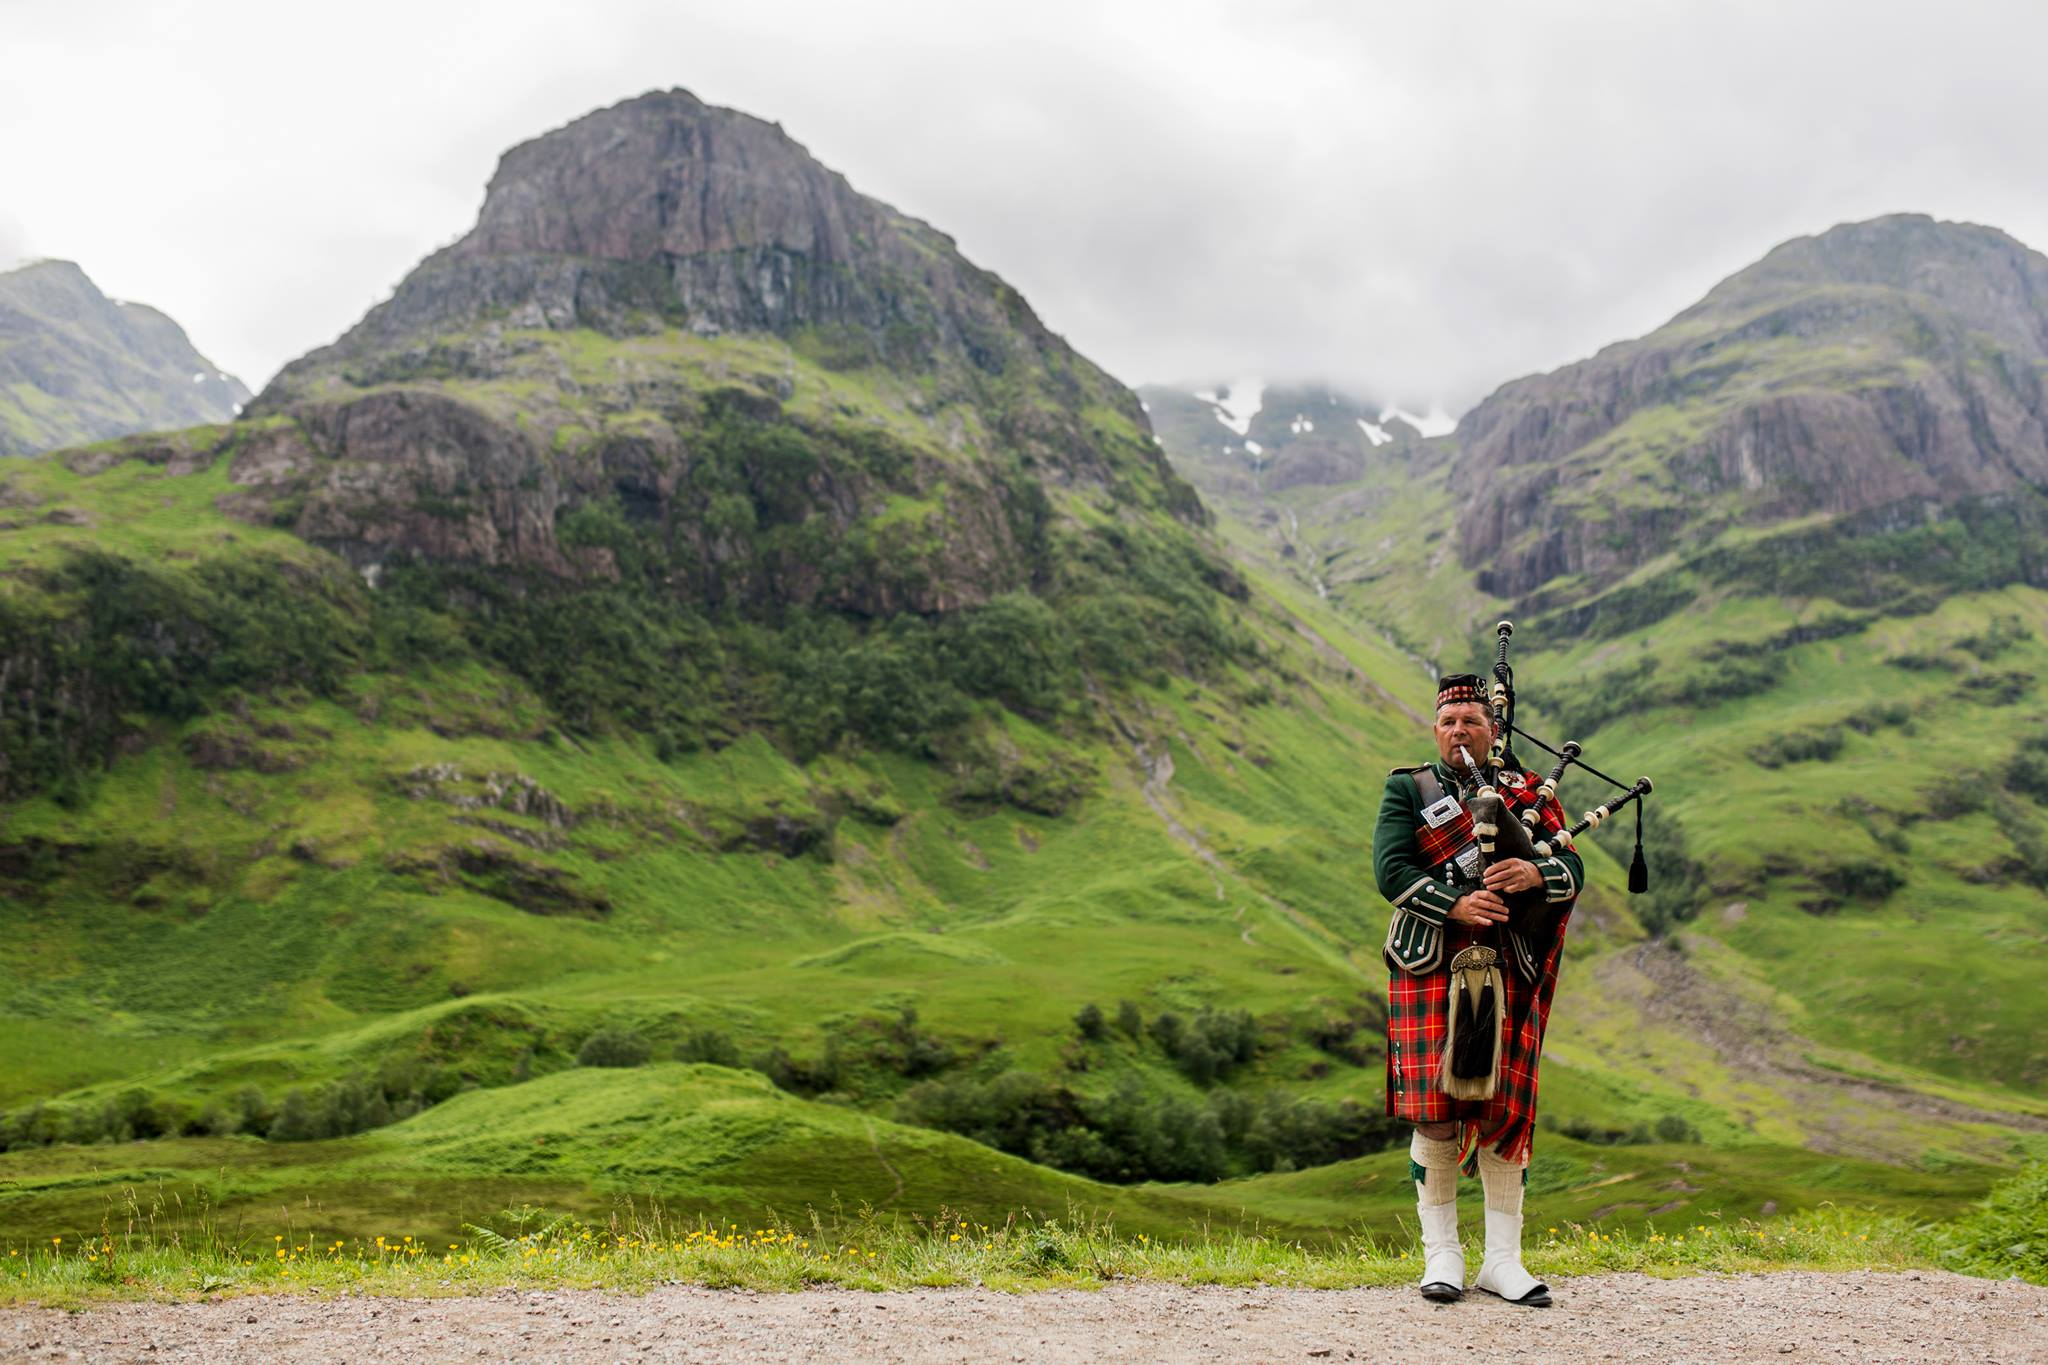 Man in kilt playing bagpipes in hills